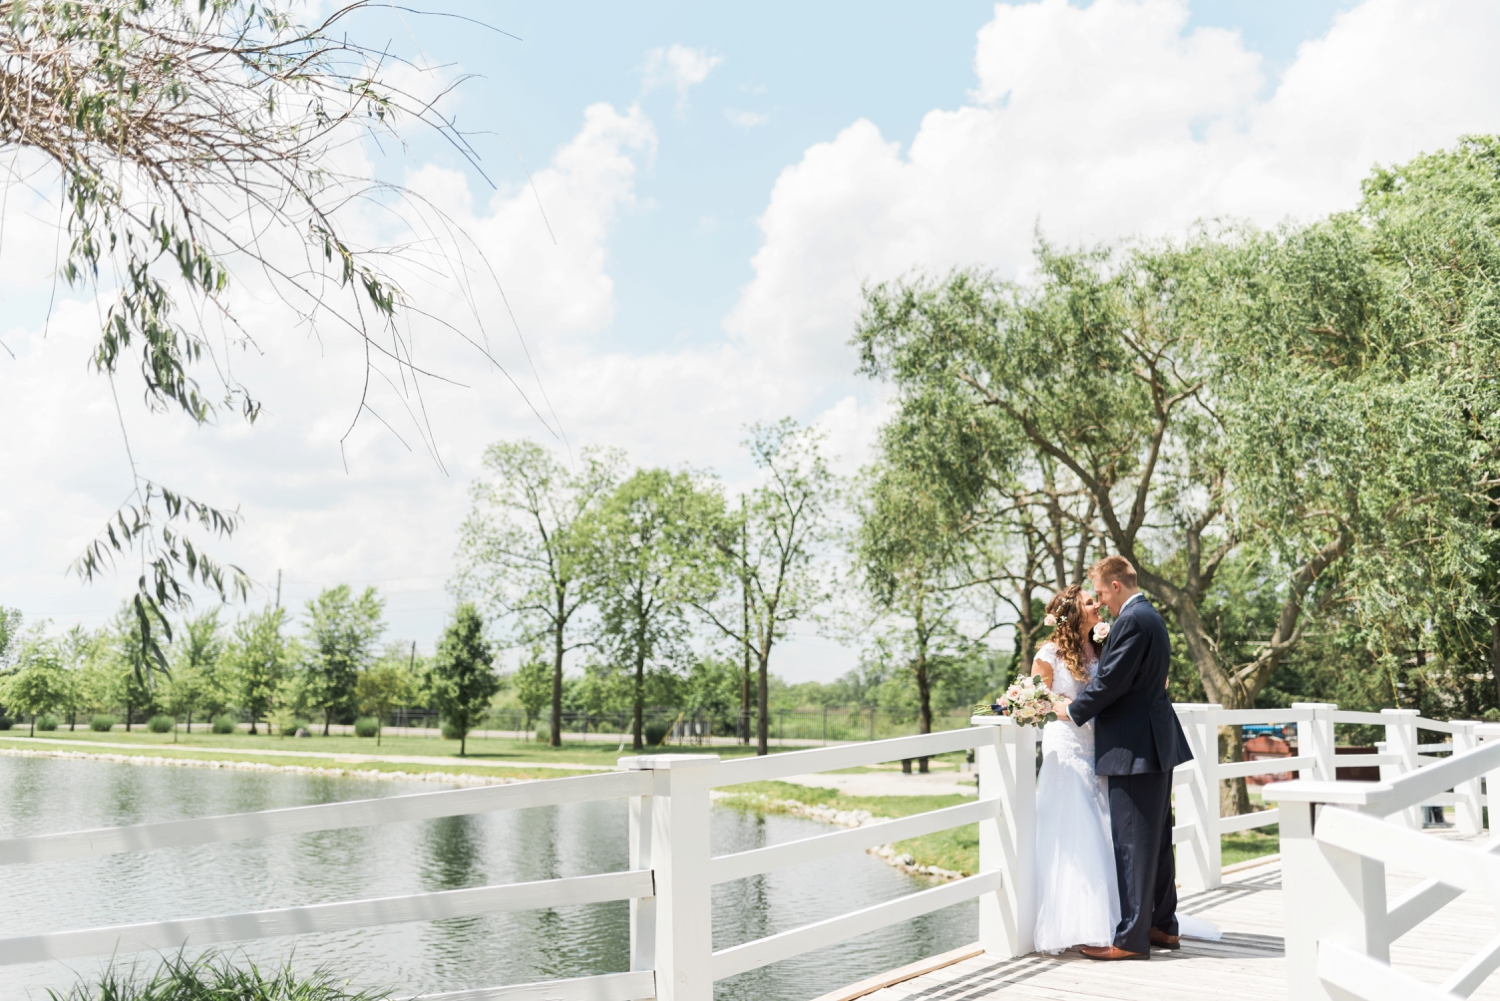 Community_Life_Center_Indianapolis_Indiana_Wedding_Photographer_Chloe_Luka_Photography_6894.jpg